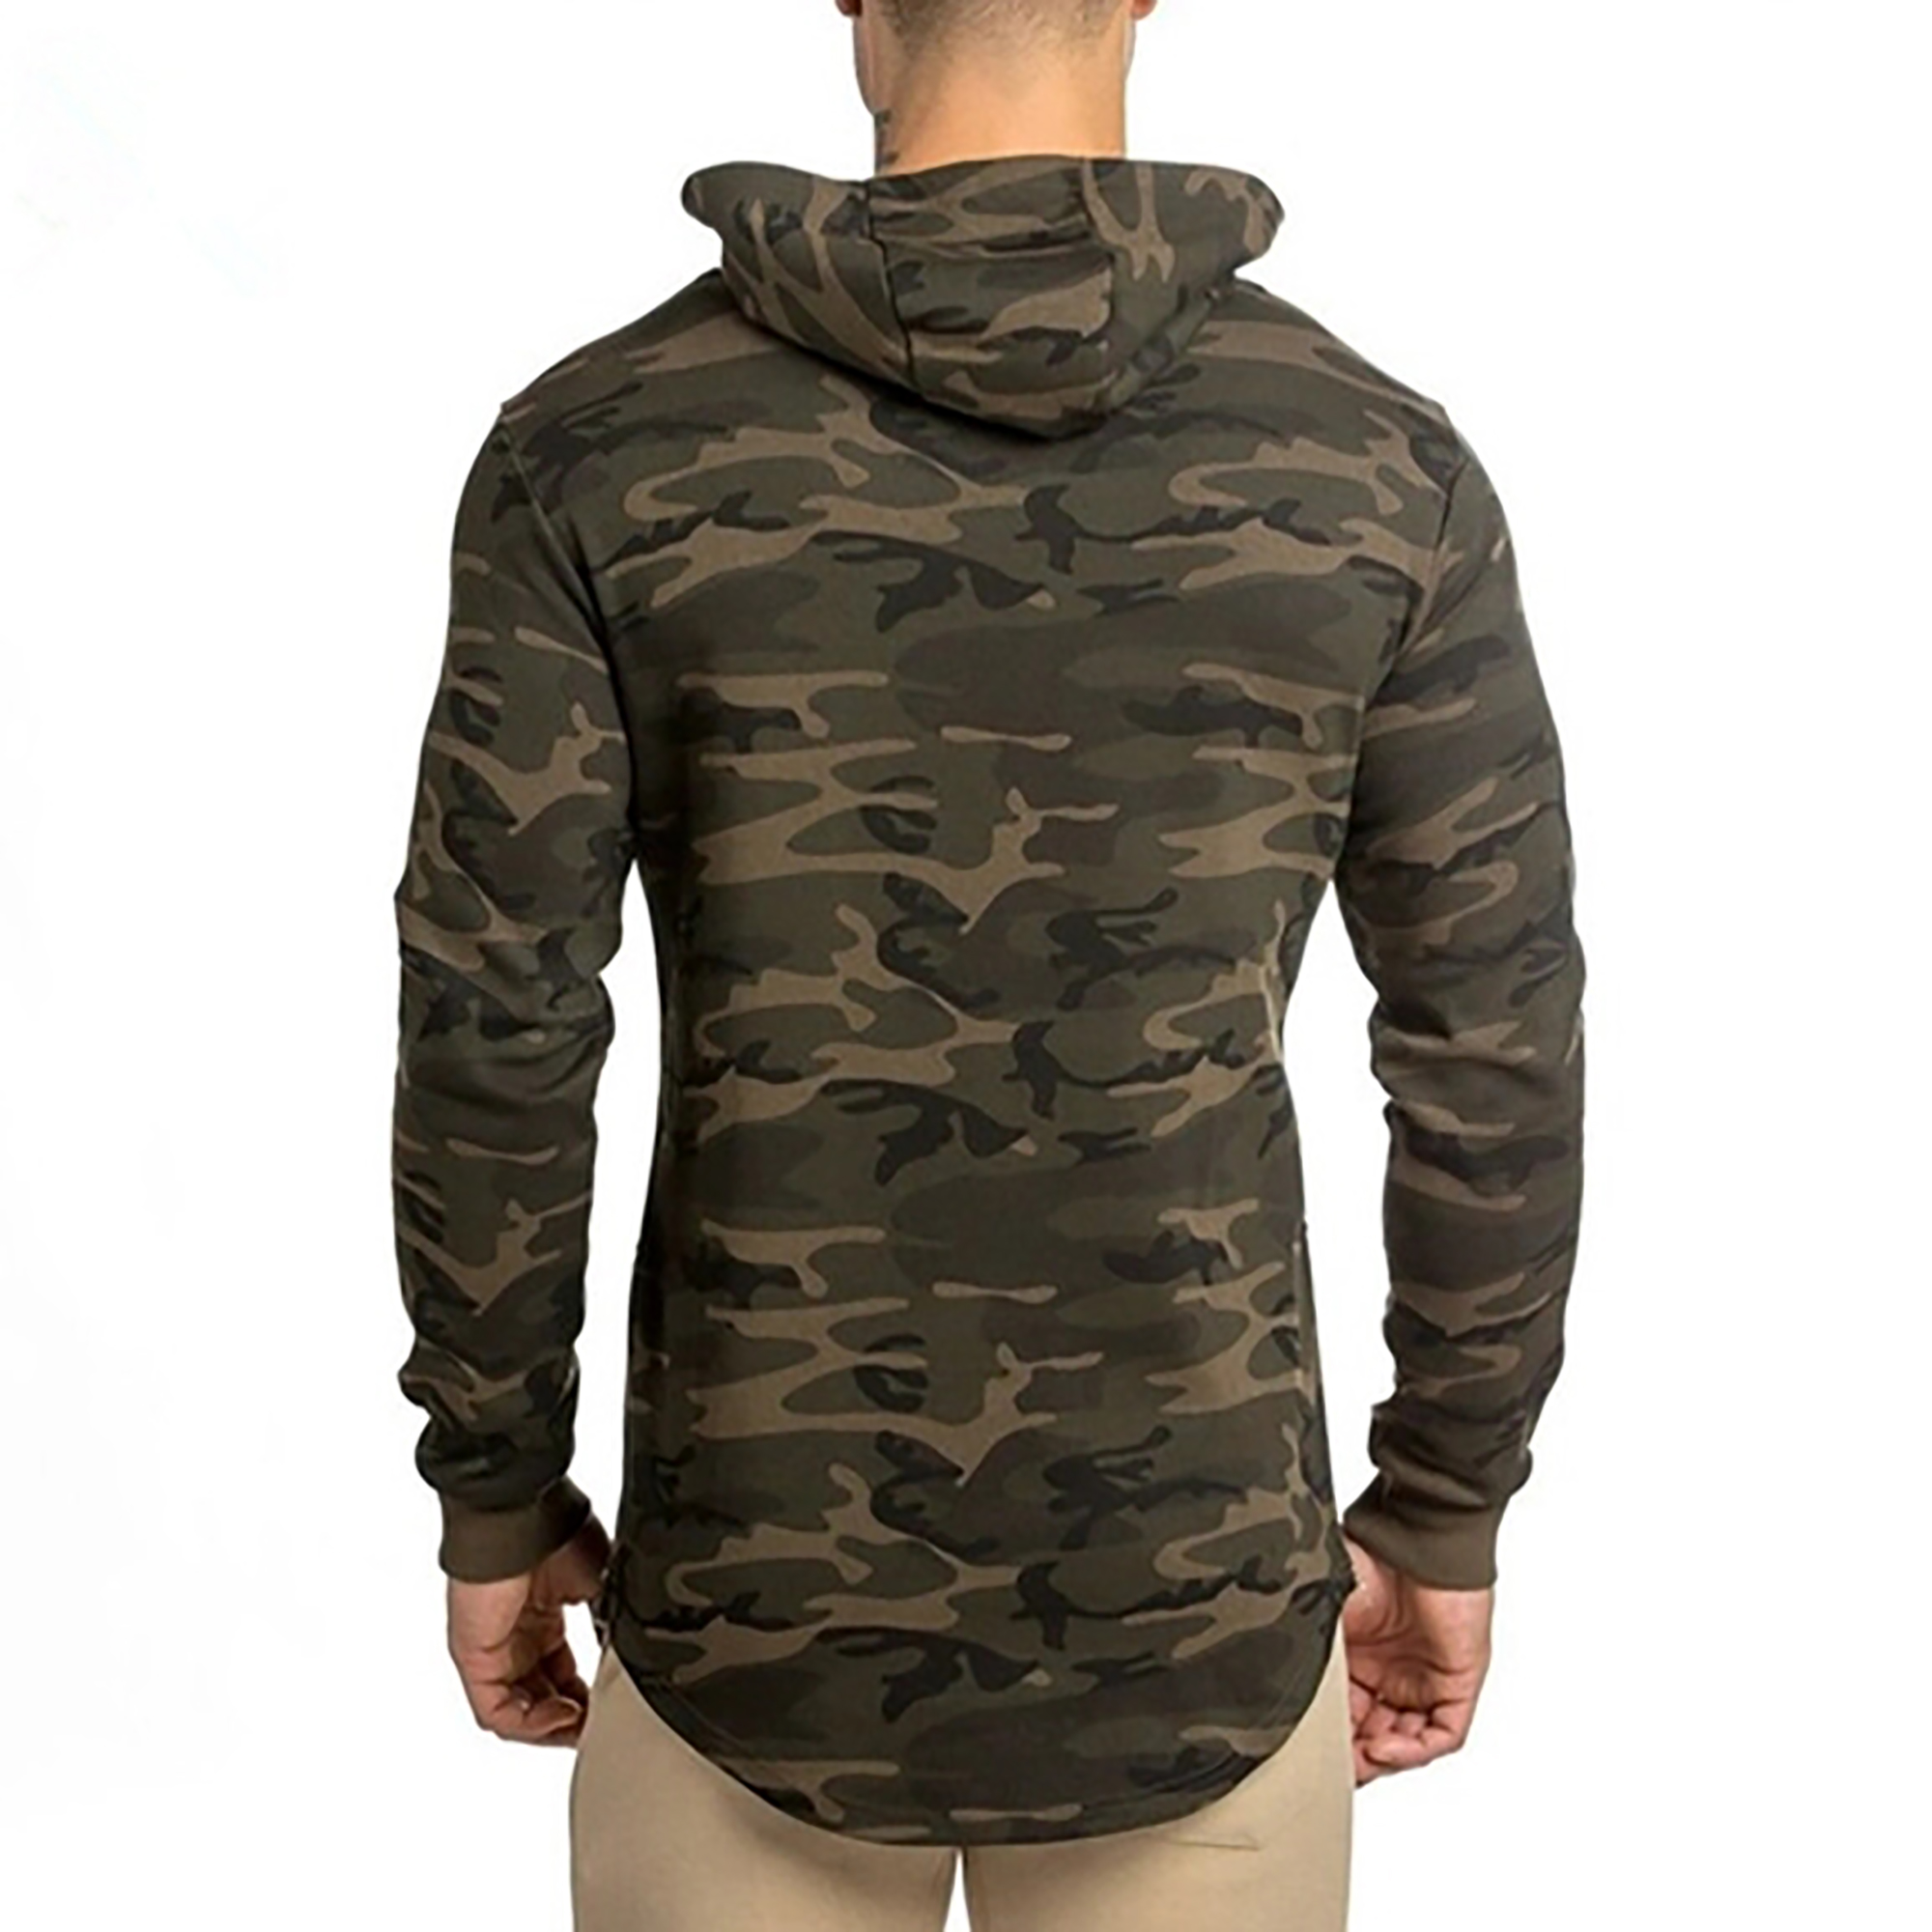 Camo Fitness Tracksuit Plus Size Pullover Hoodies